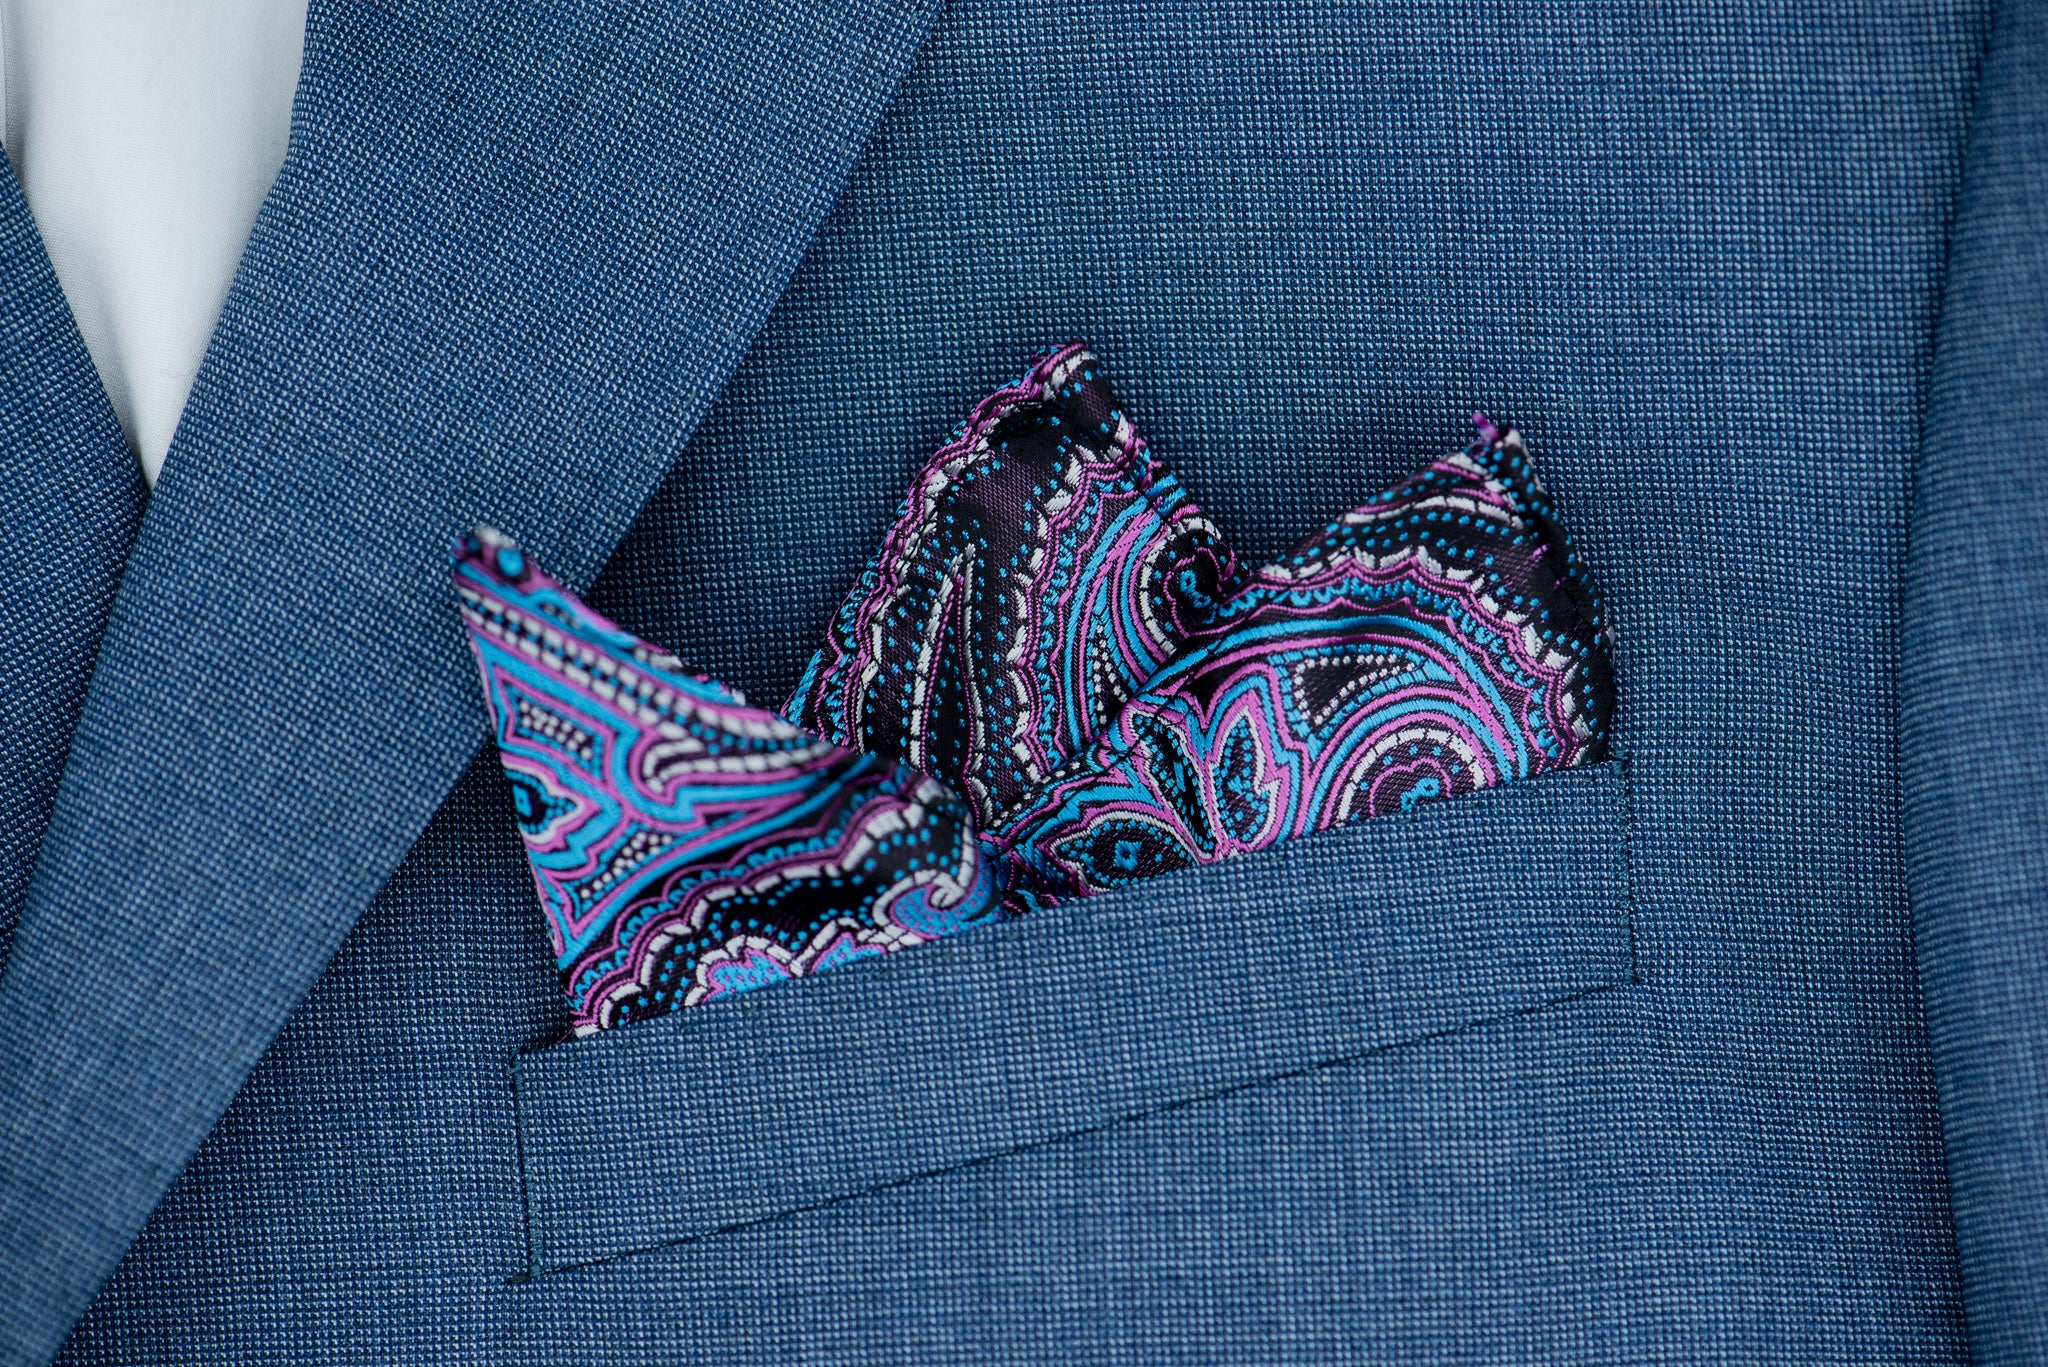 Silk Pocket Square - Burgundy background, purple, blue, lavender, blue stitching